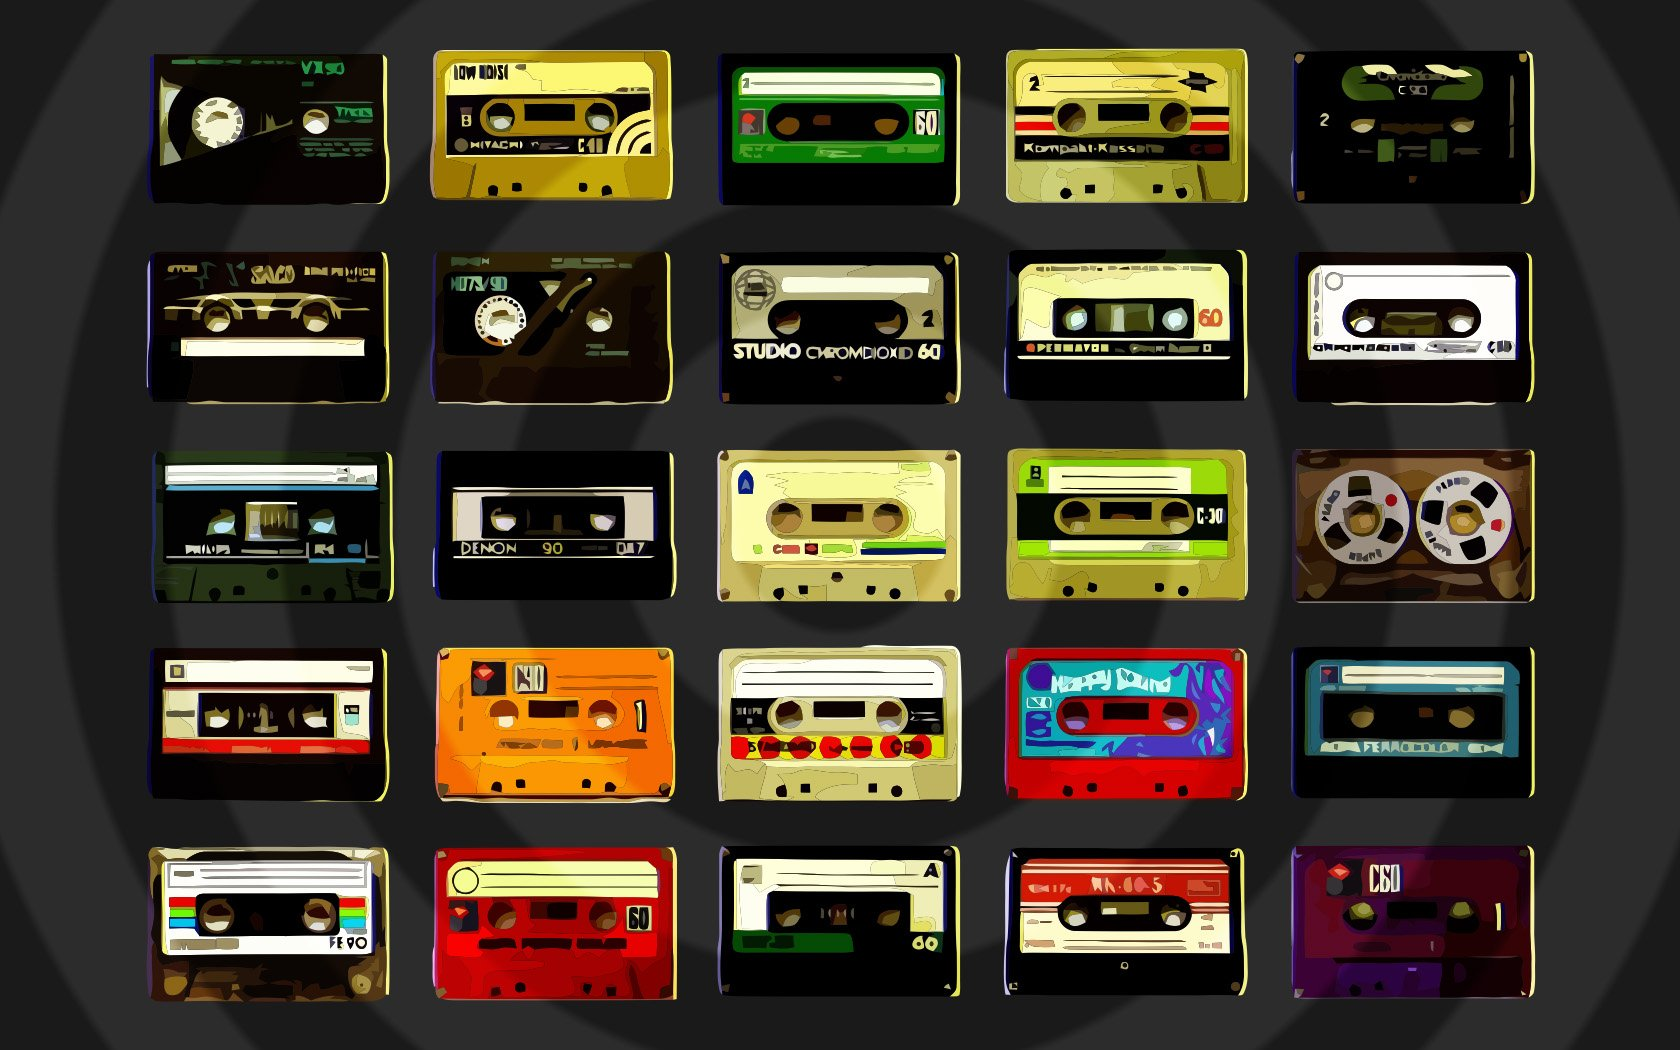 Cassette Audio Tapes Wallpaper 1680x1050 242589 HD Wallpapers Download Free Images Wallpaper [1000image.com]